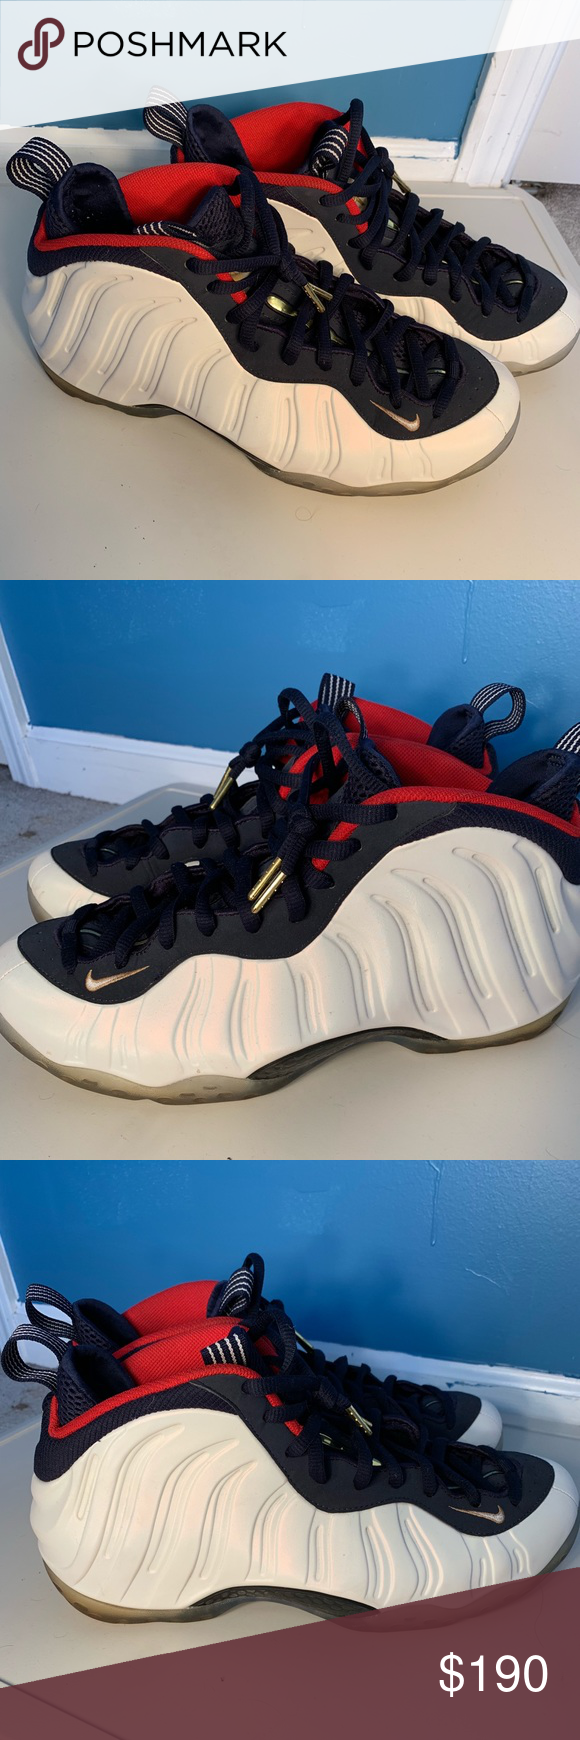 uk availability 4f2bf 0e55d Nike Foamposite Olympic size 11 Nike foamposite 2016 ...